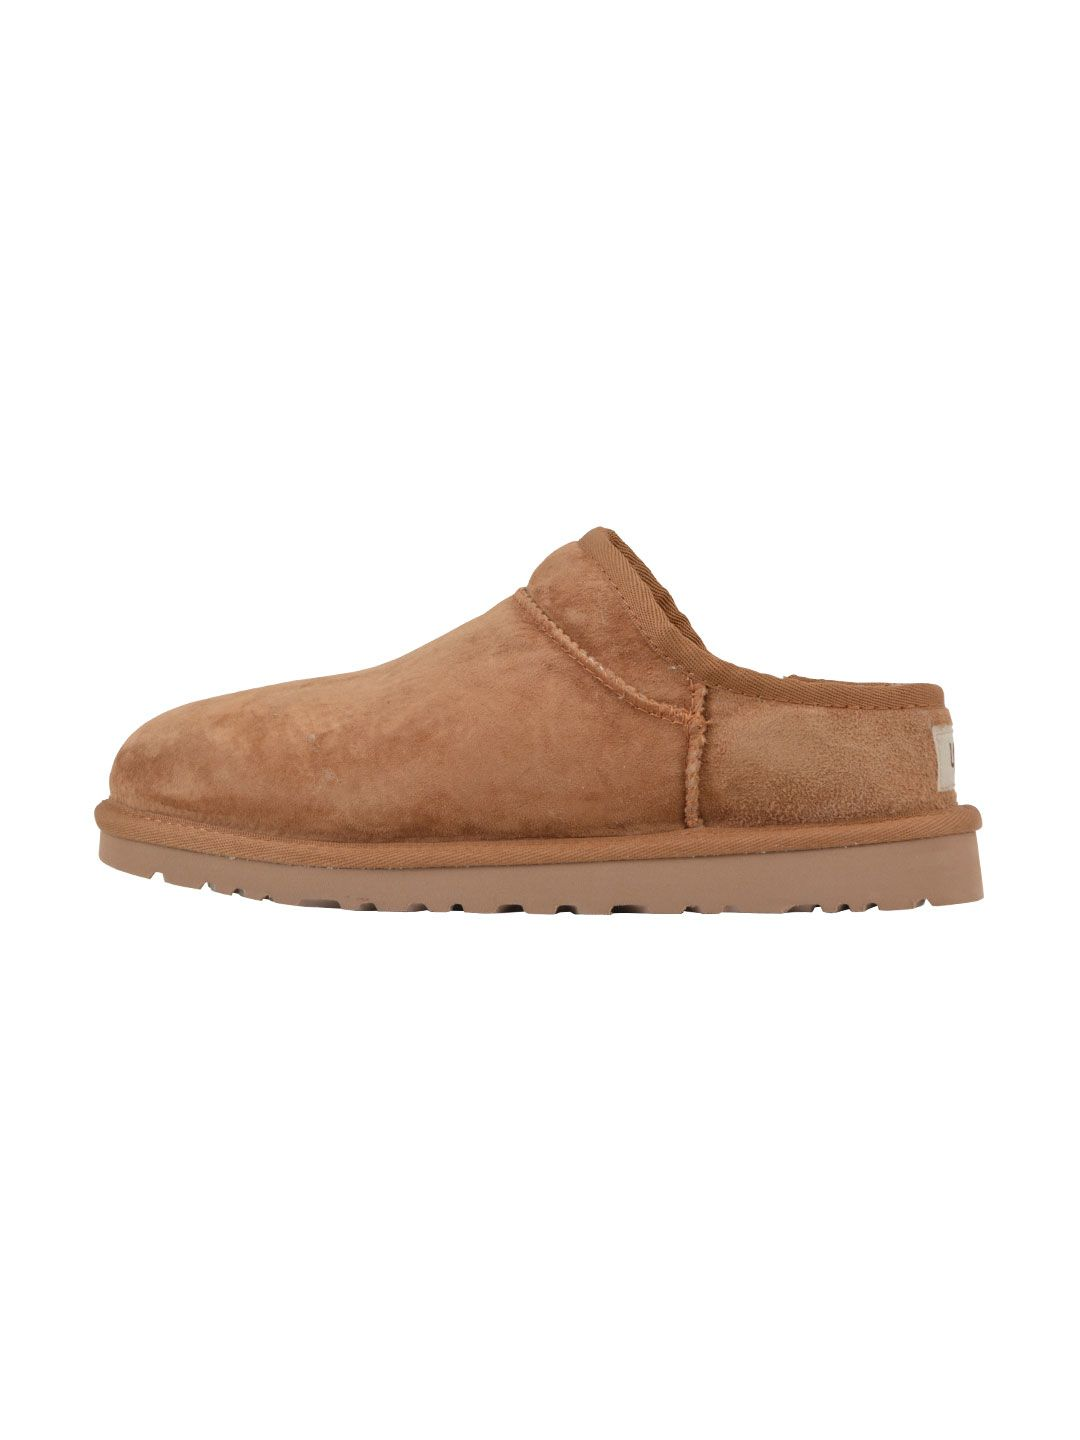 UGG Suede Slipper